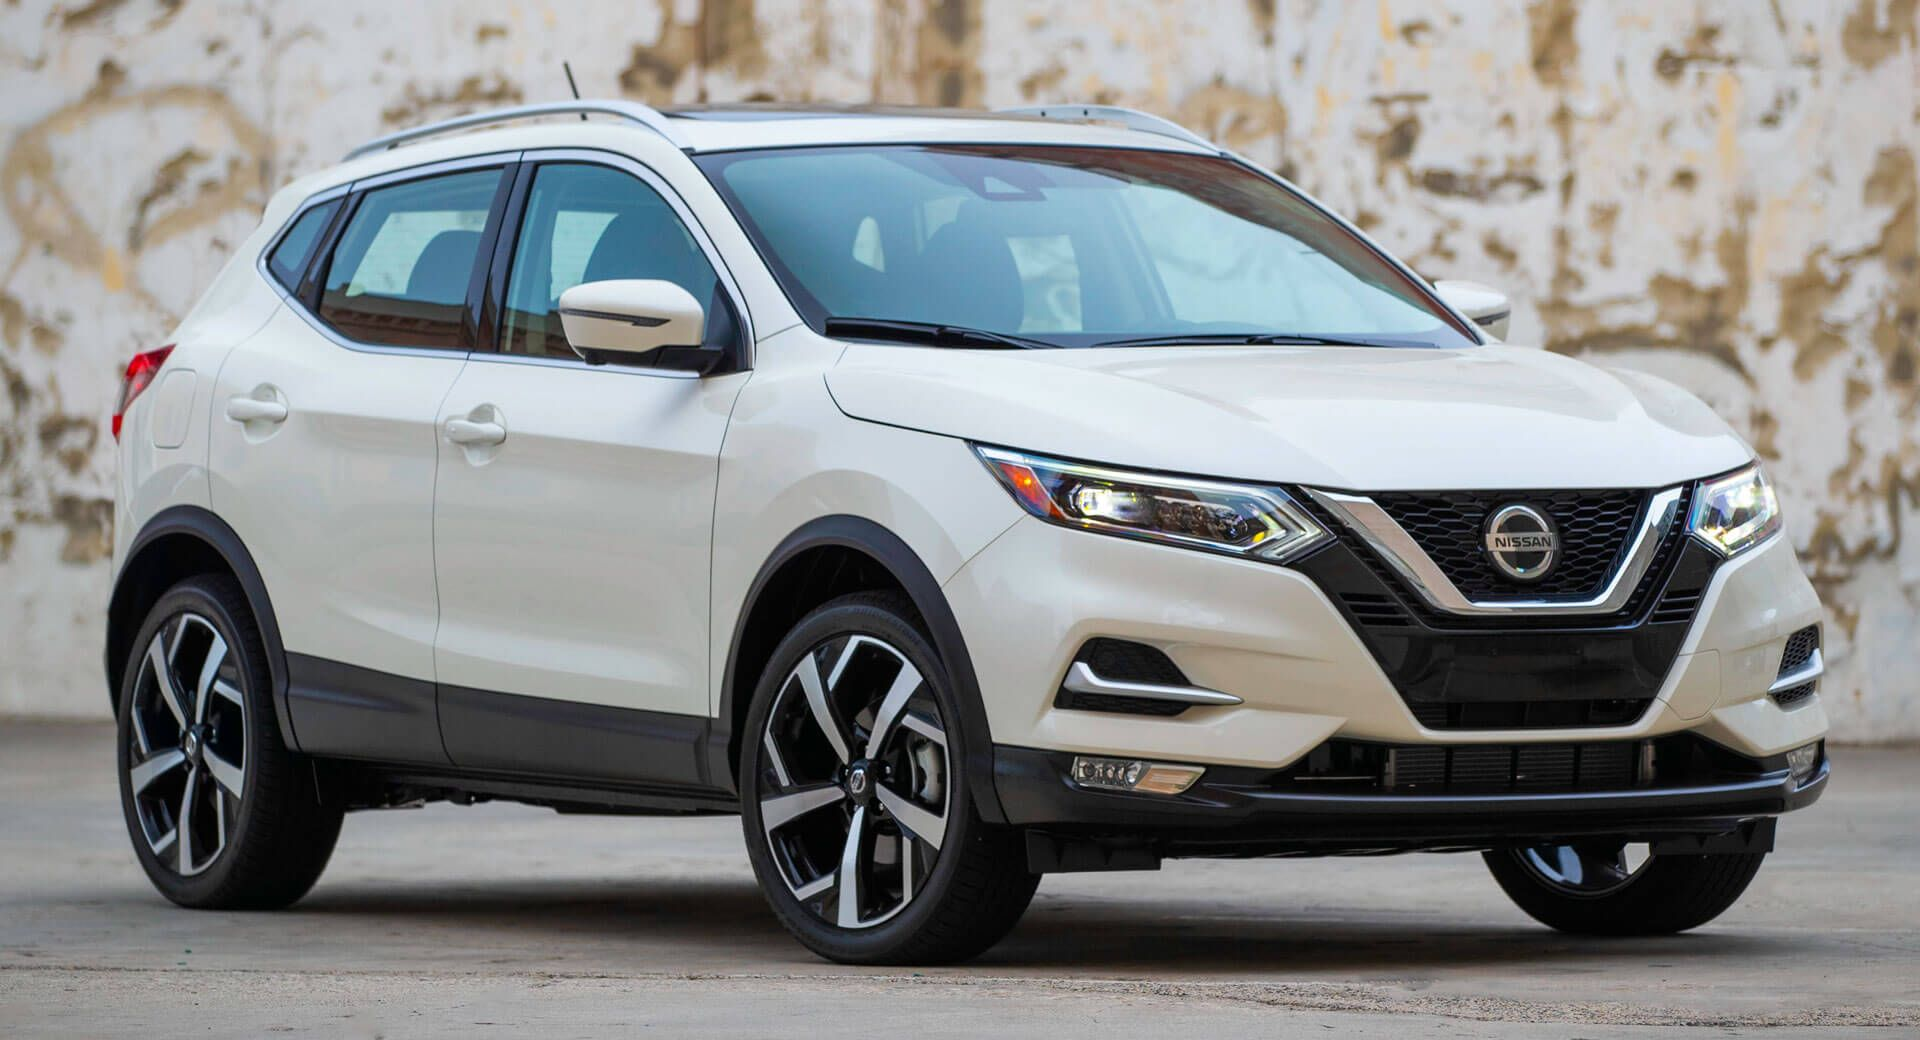 2020 Nissan Rogue Sport Facelift Results In A 900 Price